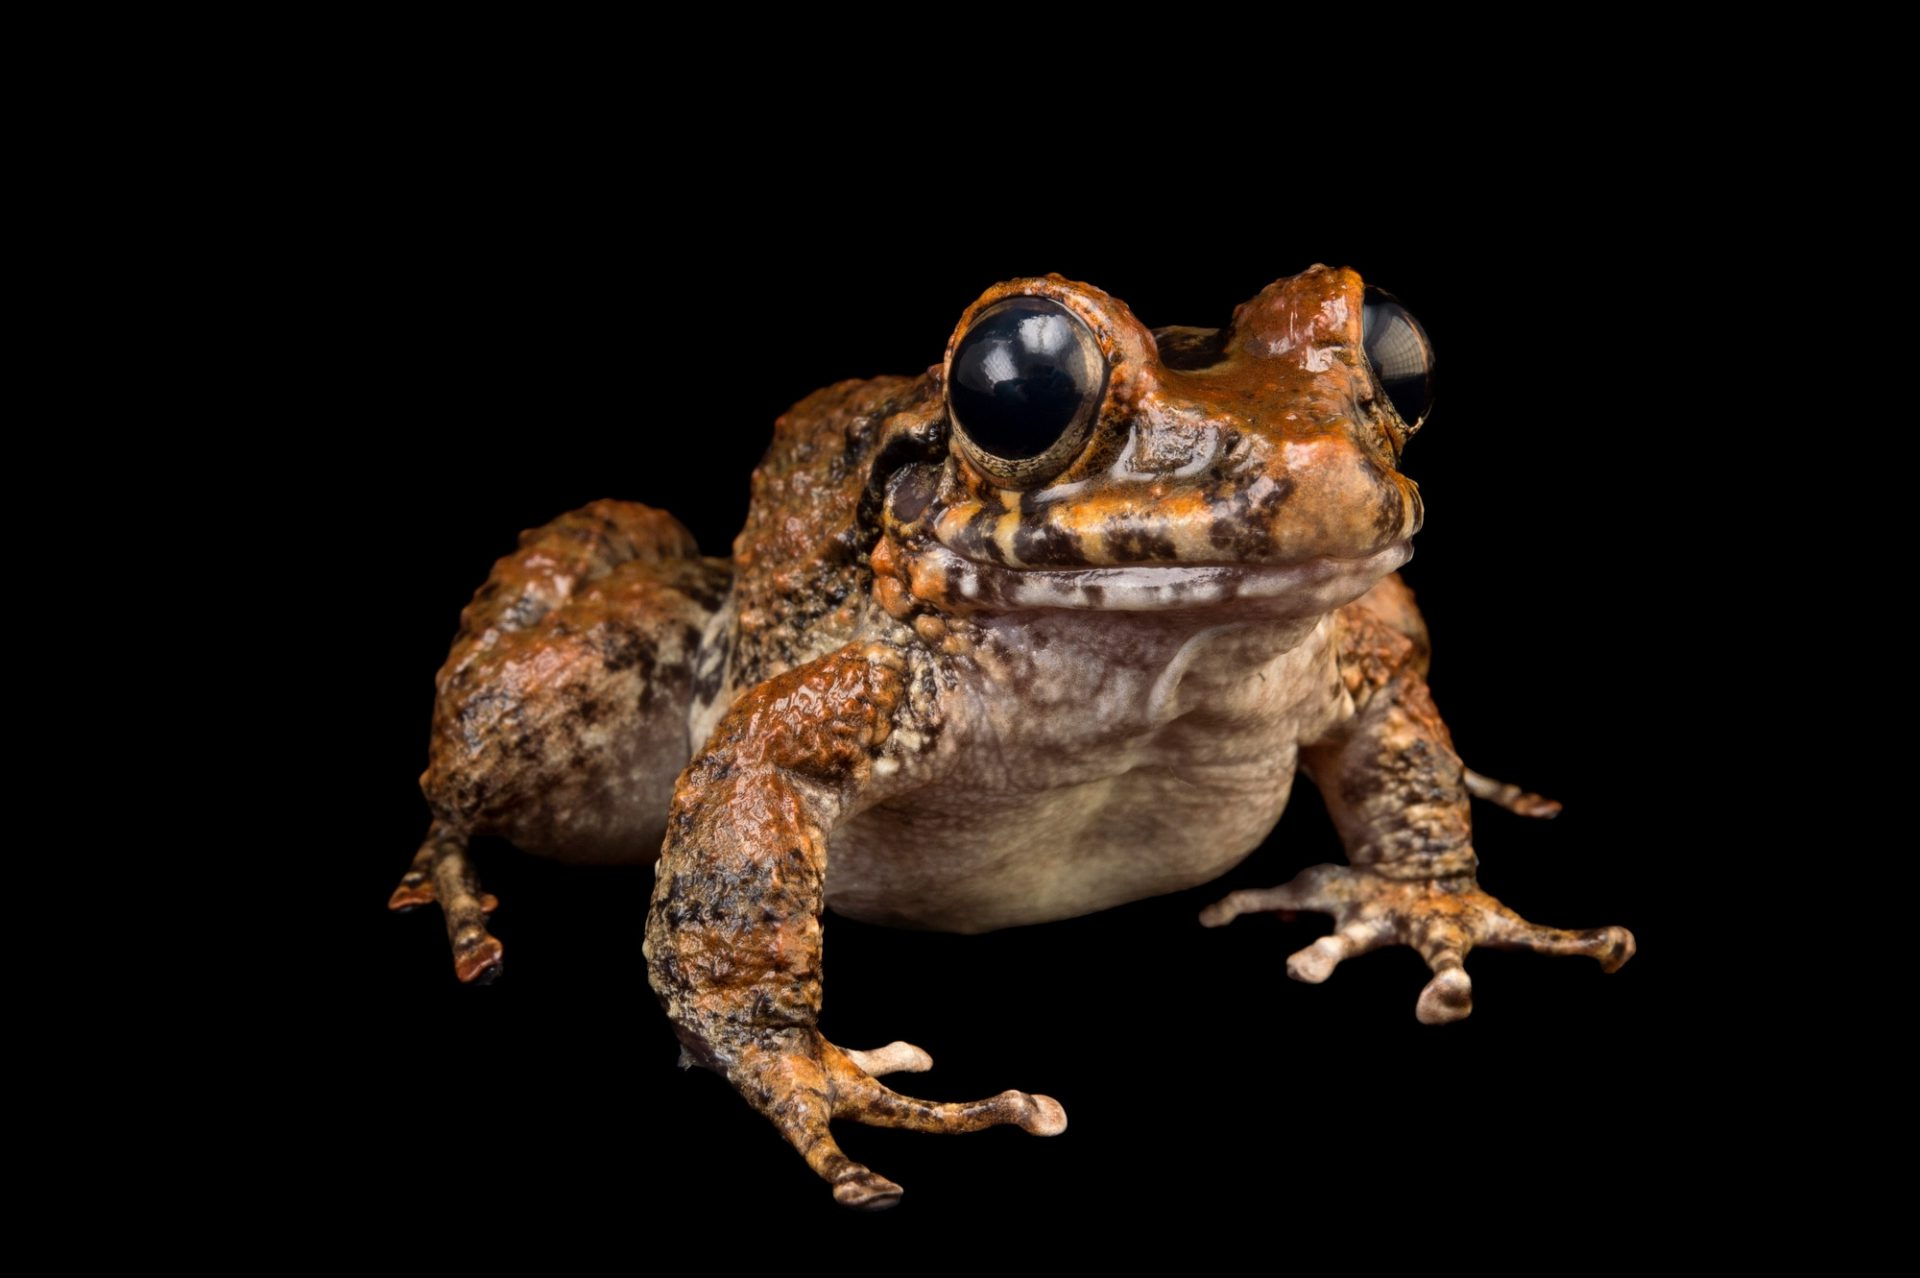 A male robber frog (in the Craugastor punctariolus series) at the Panama Amphibian Rescue and Conservation Project. This is a project designed to establish captive breeding populations of frogs at risk of extinction from the frog-killing Chytrid fungus.